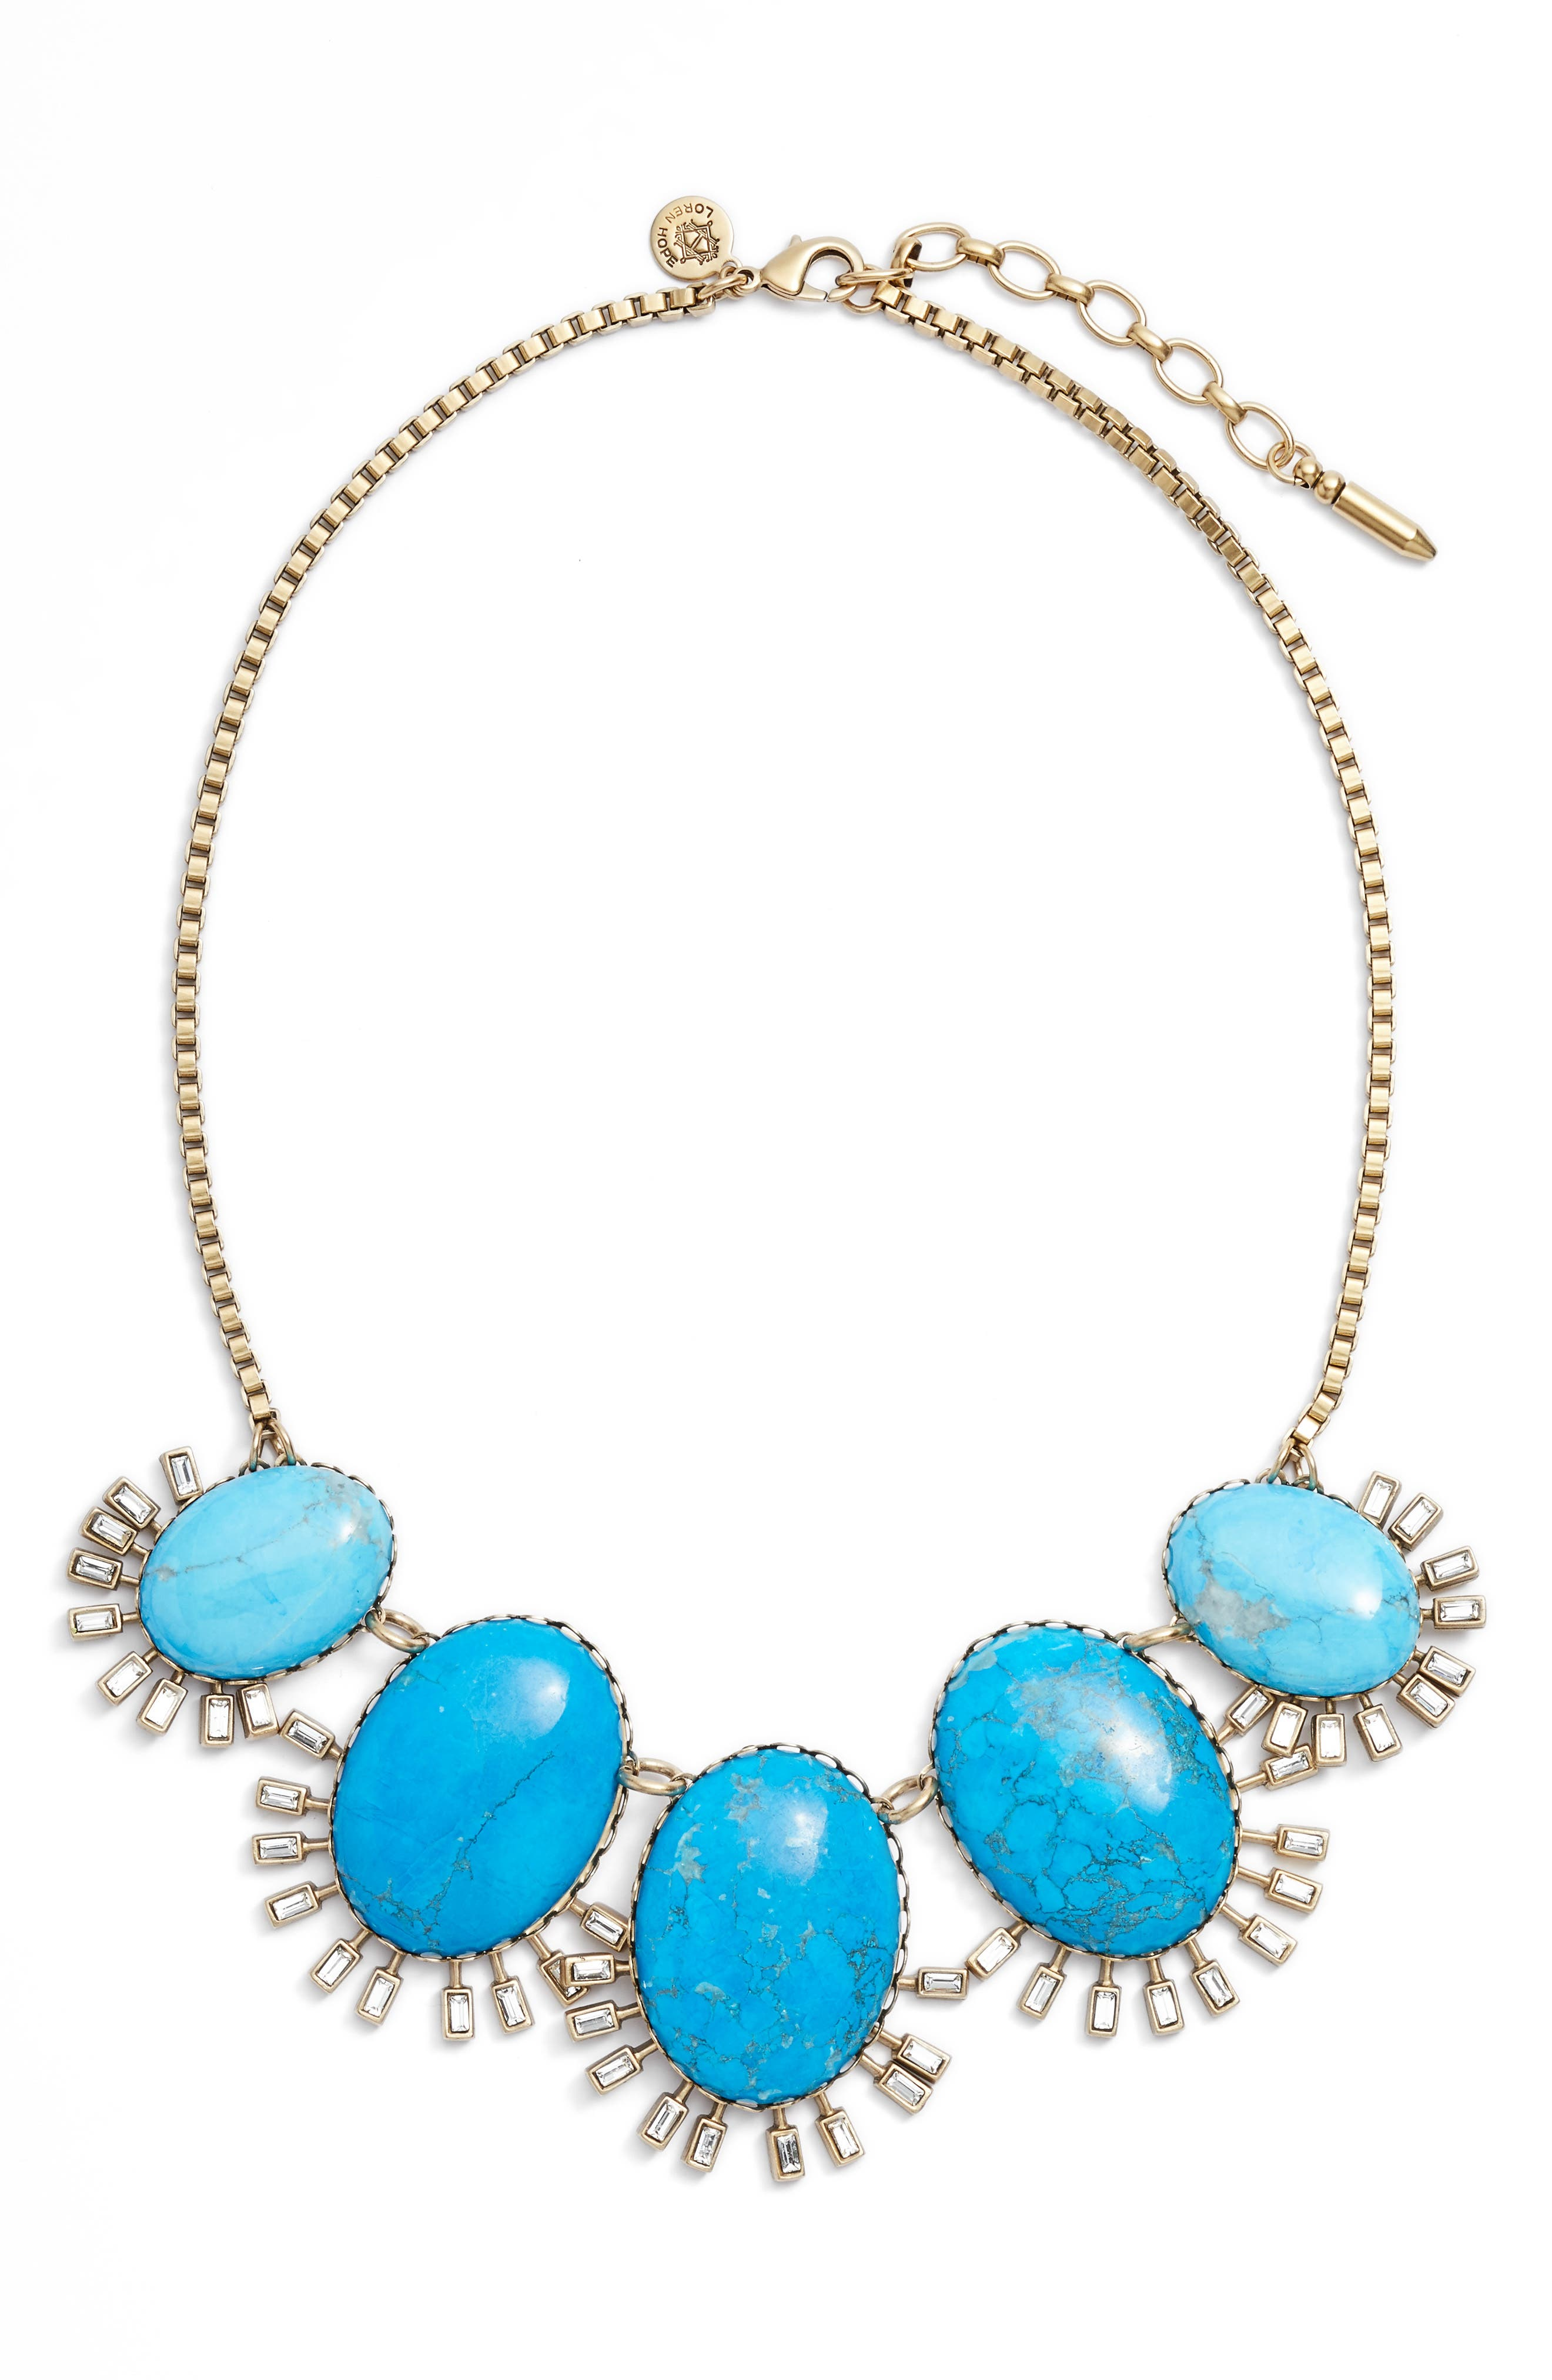 Roxy Necklace,                             Main thumbnail 1, color,                             400